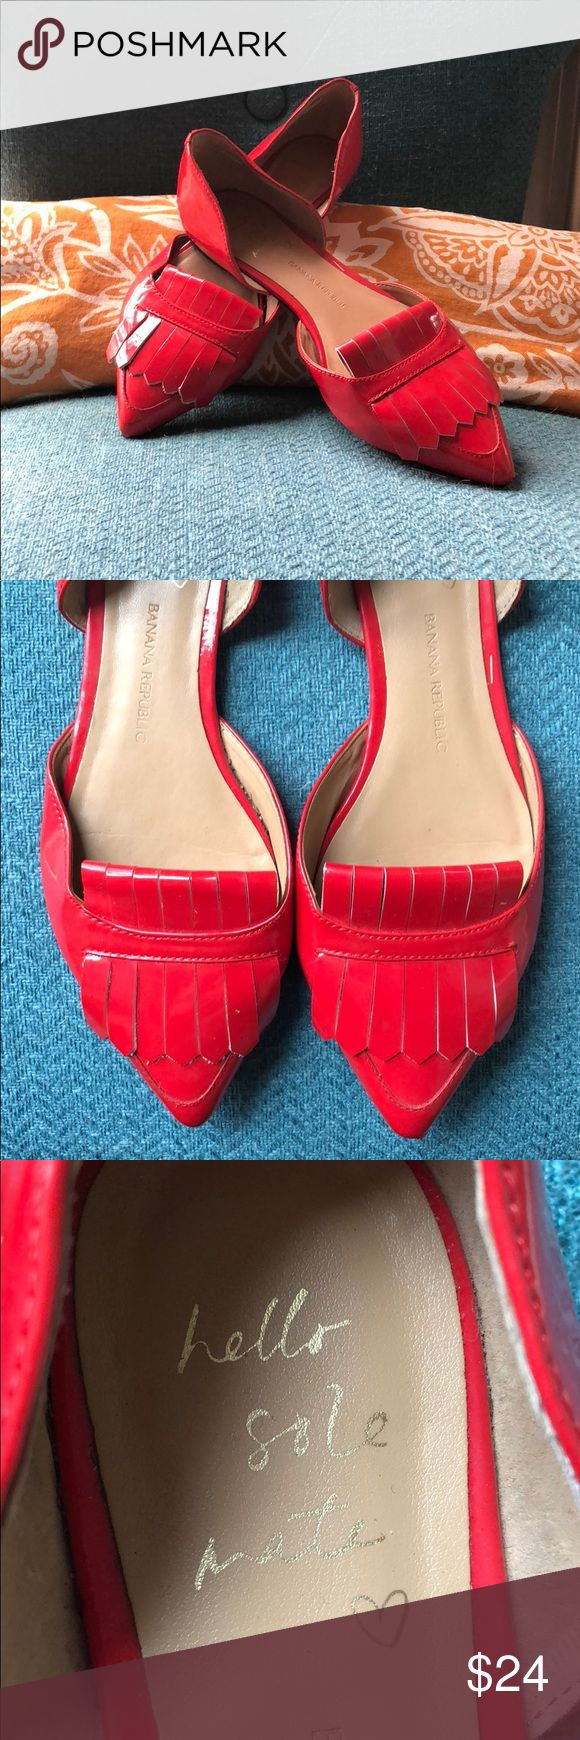 Hello sole mate, Banana Republic red flat so 7 1/2 Red upper patent leather shiny red shoe. Size 7 1/2- adorable with tassels. ♥️ Only worn once. Perfect with a red lip 💋 Banana Republic Shoes Flats & Loafers